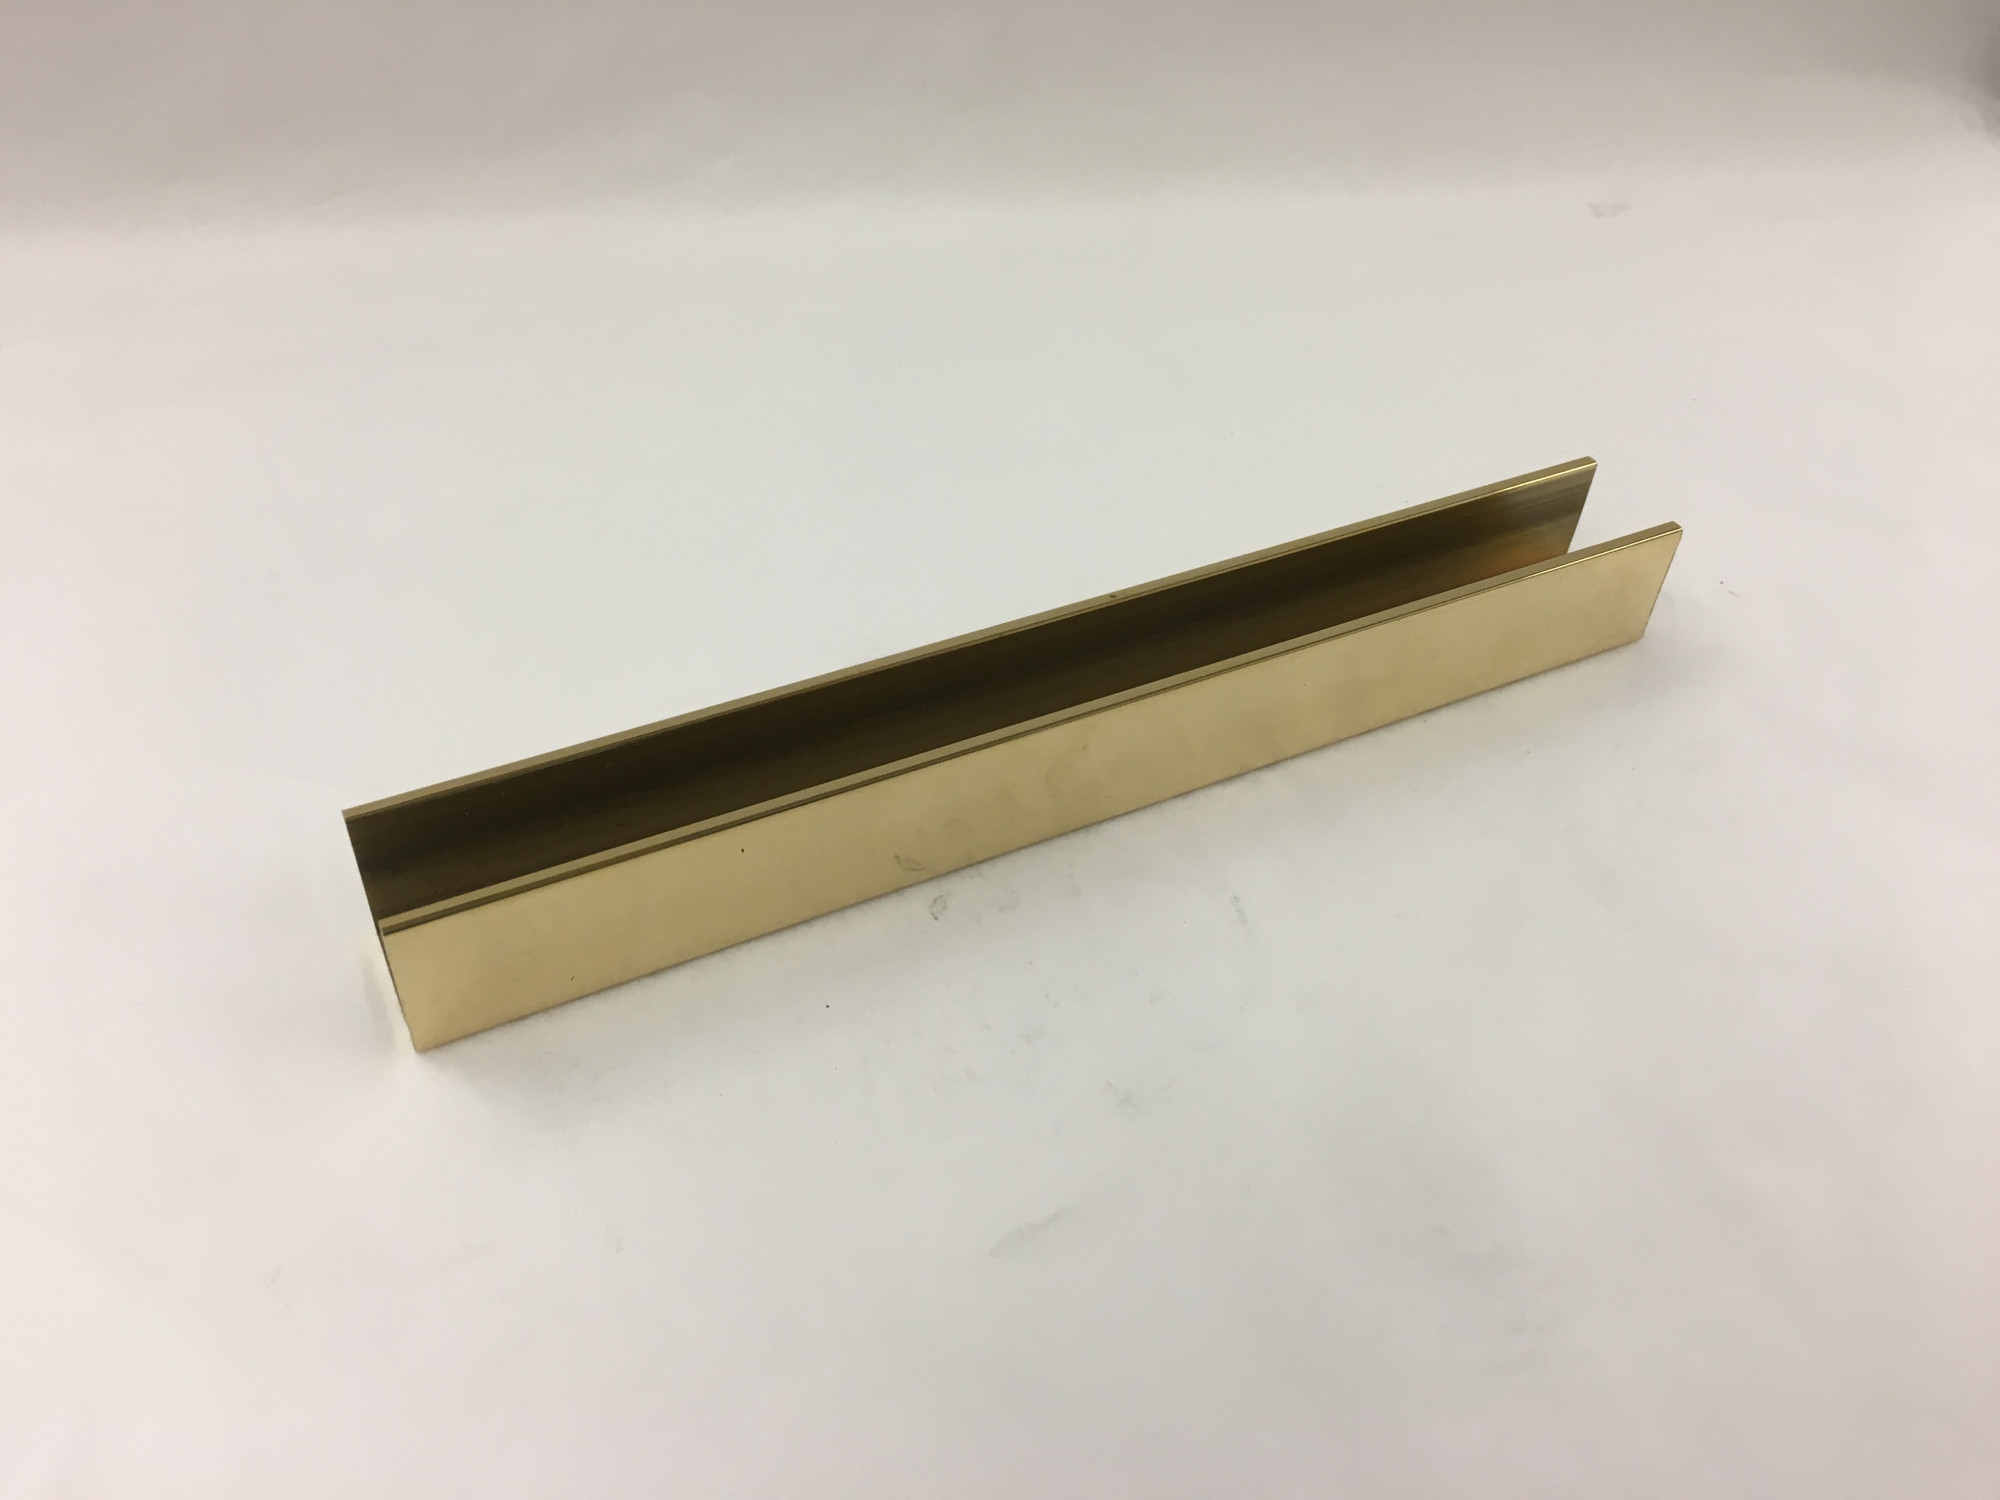 Polished Brass Flat U Channel (3/4in x 3/4in for 1/2in Insert)